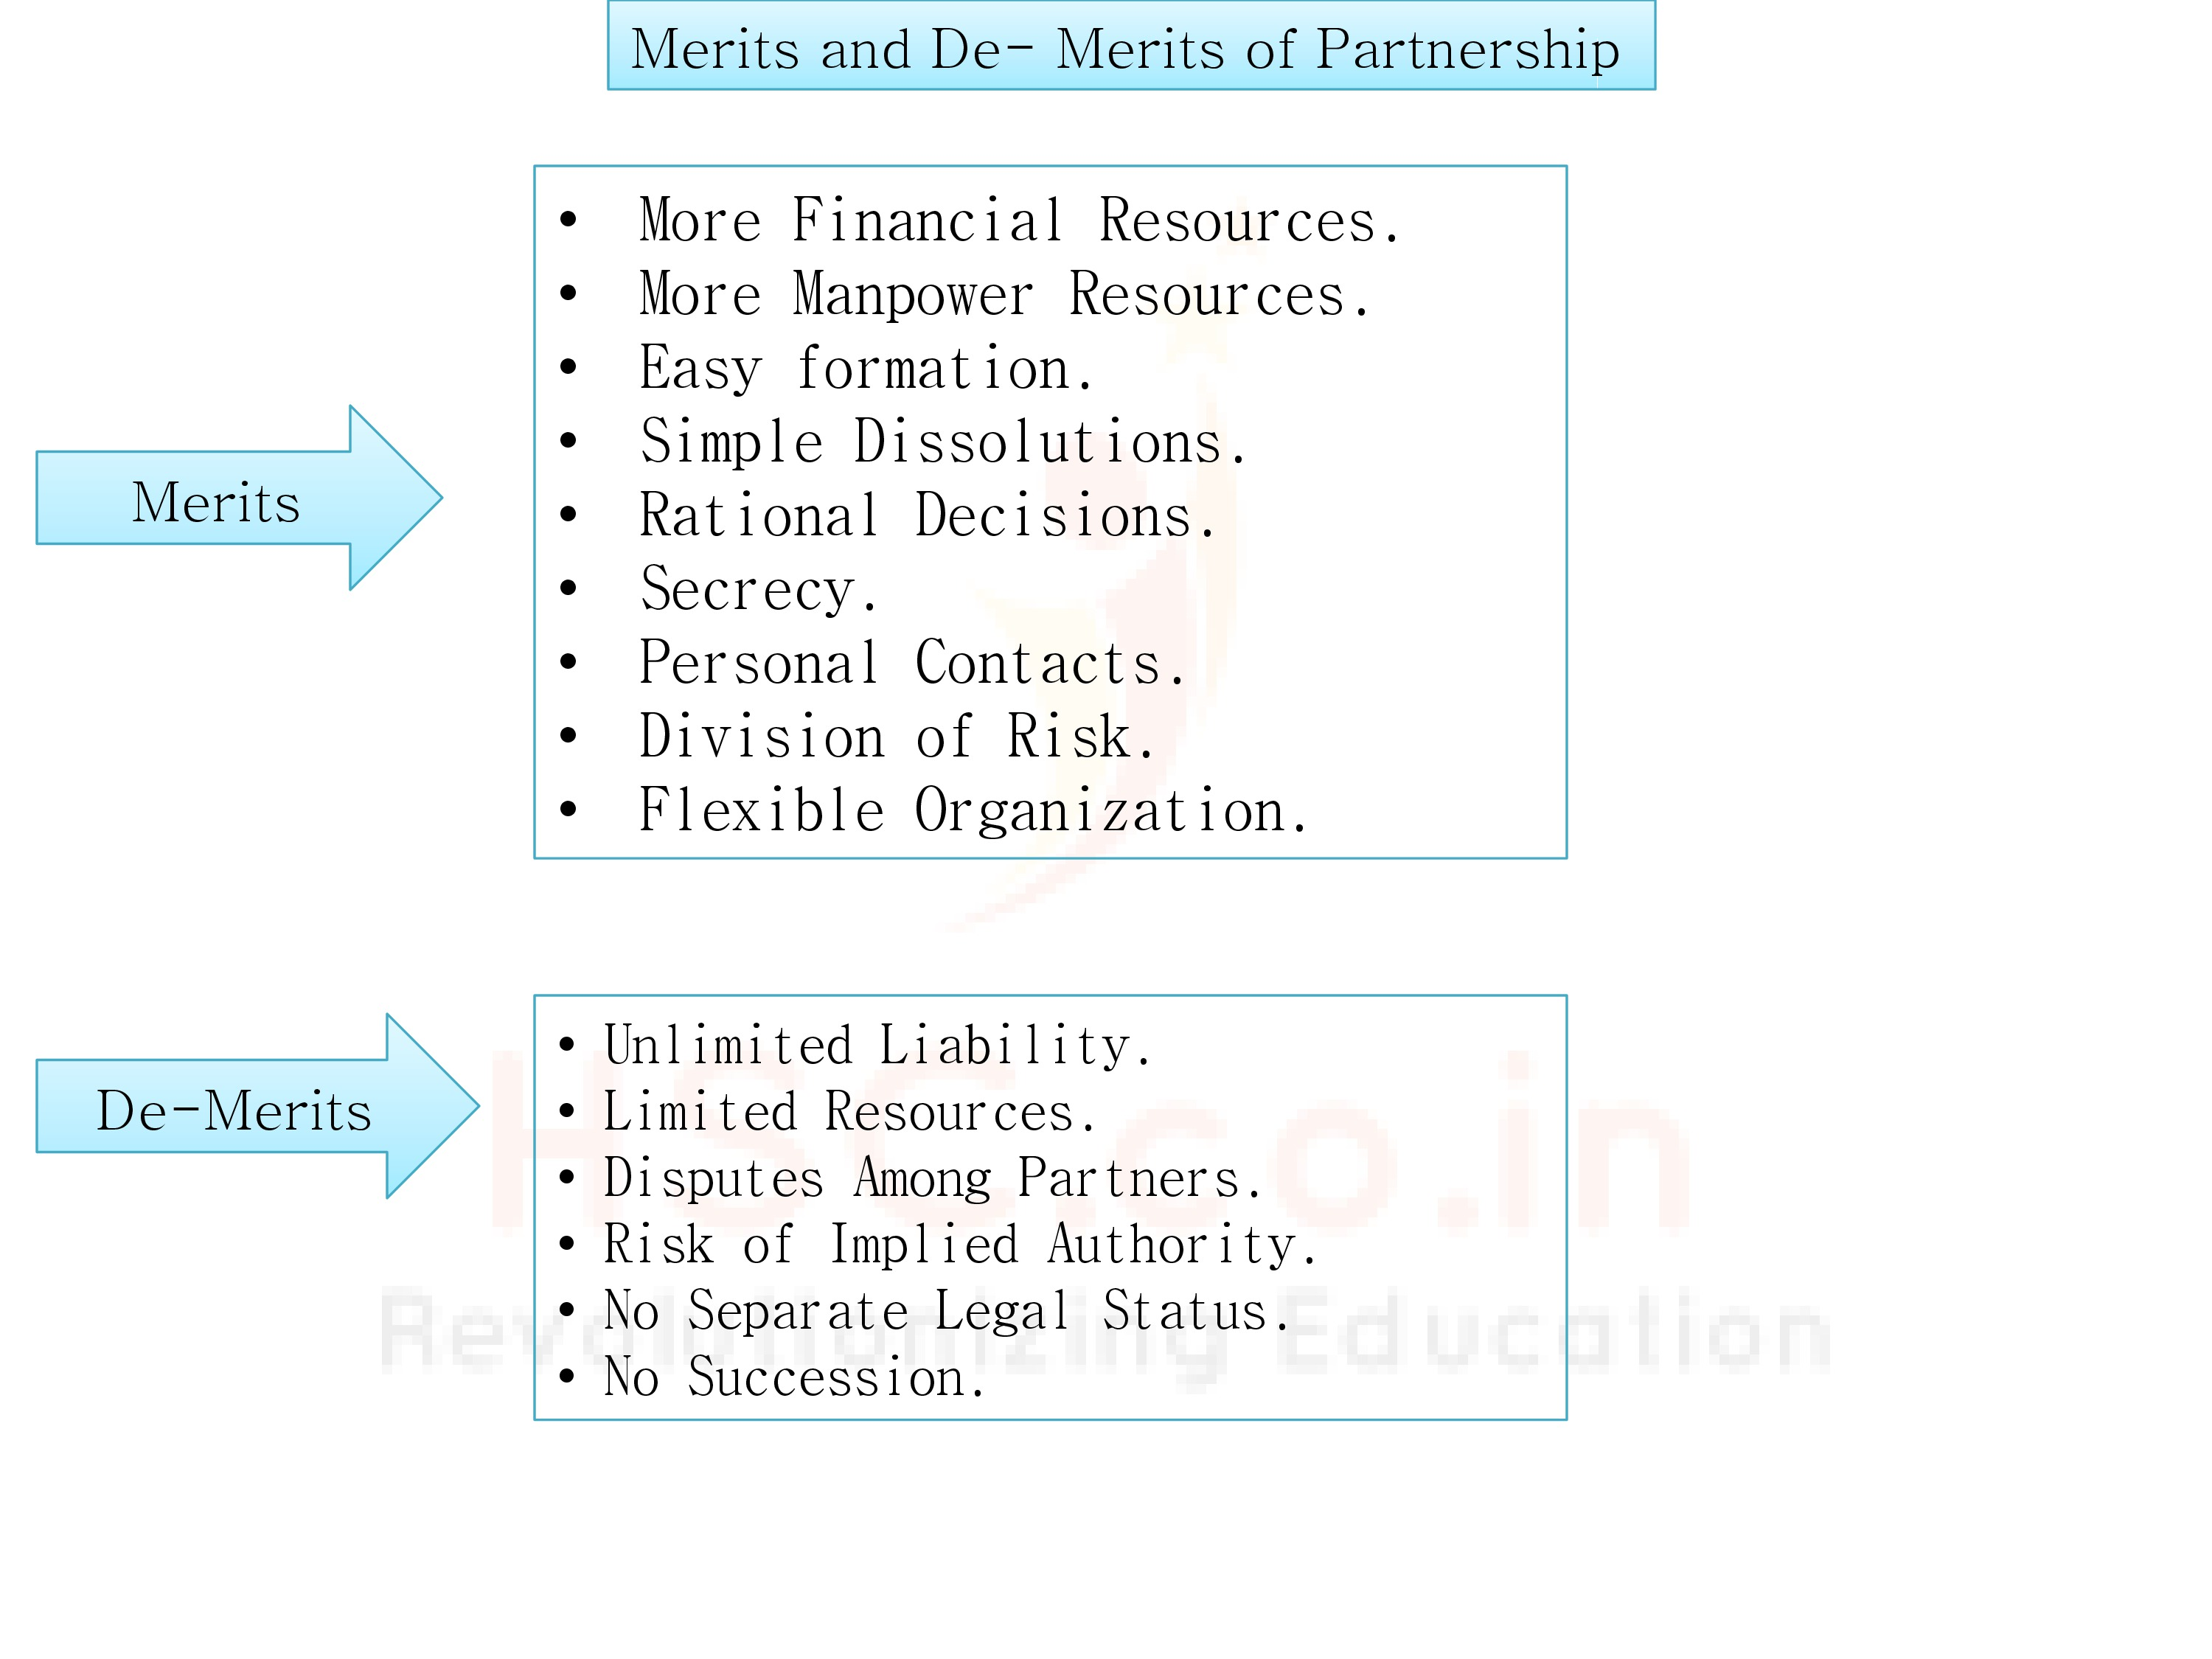 Merits and De- Merits of Parntership